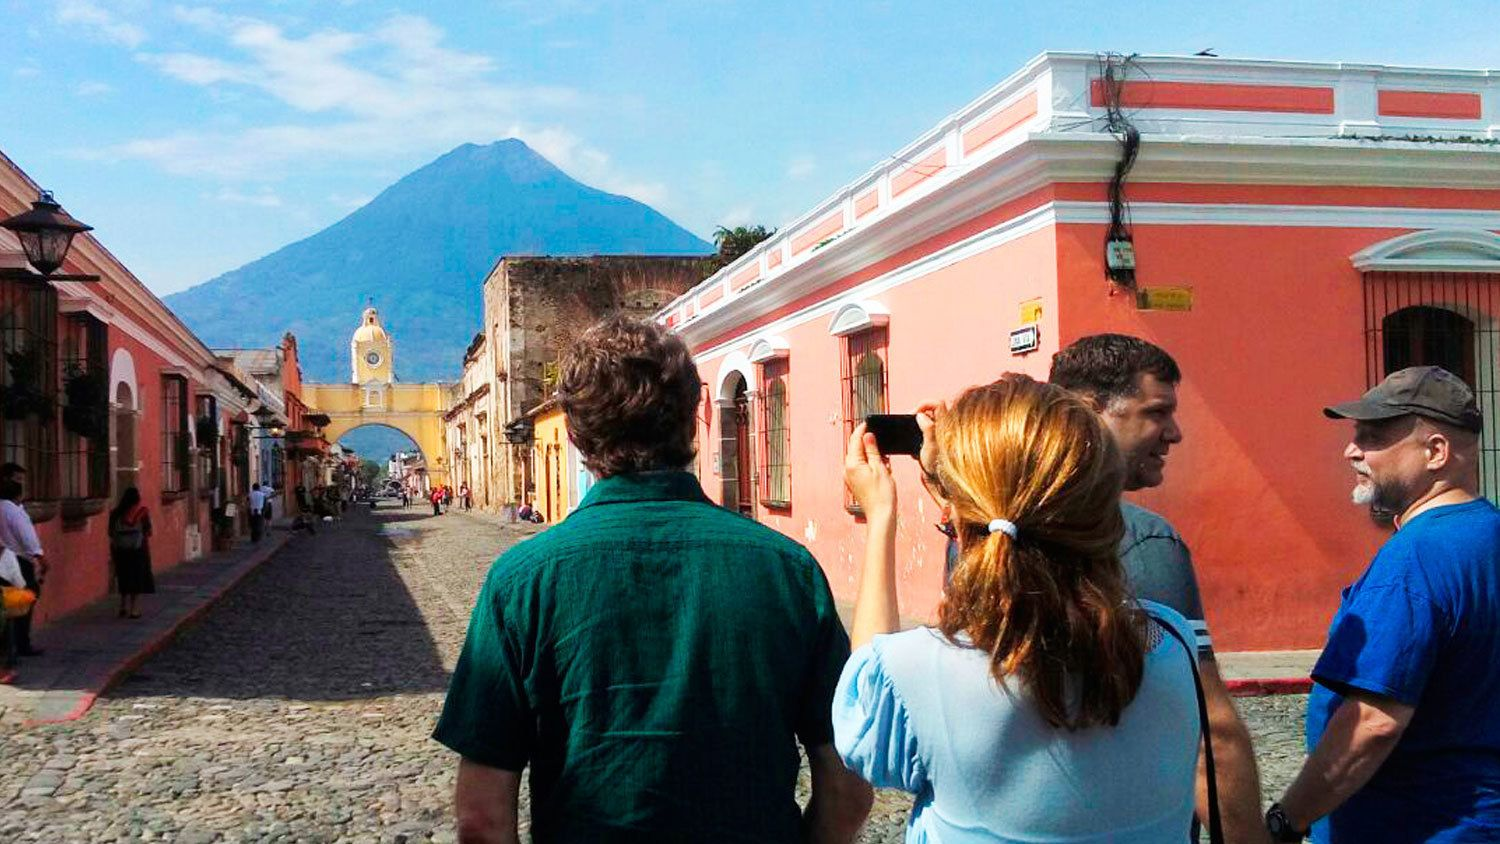 People taking pictures down street of Antigua